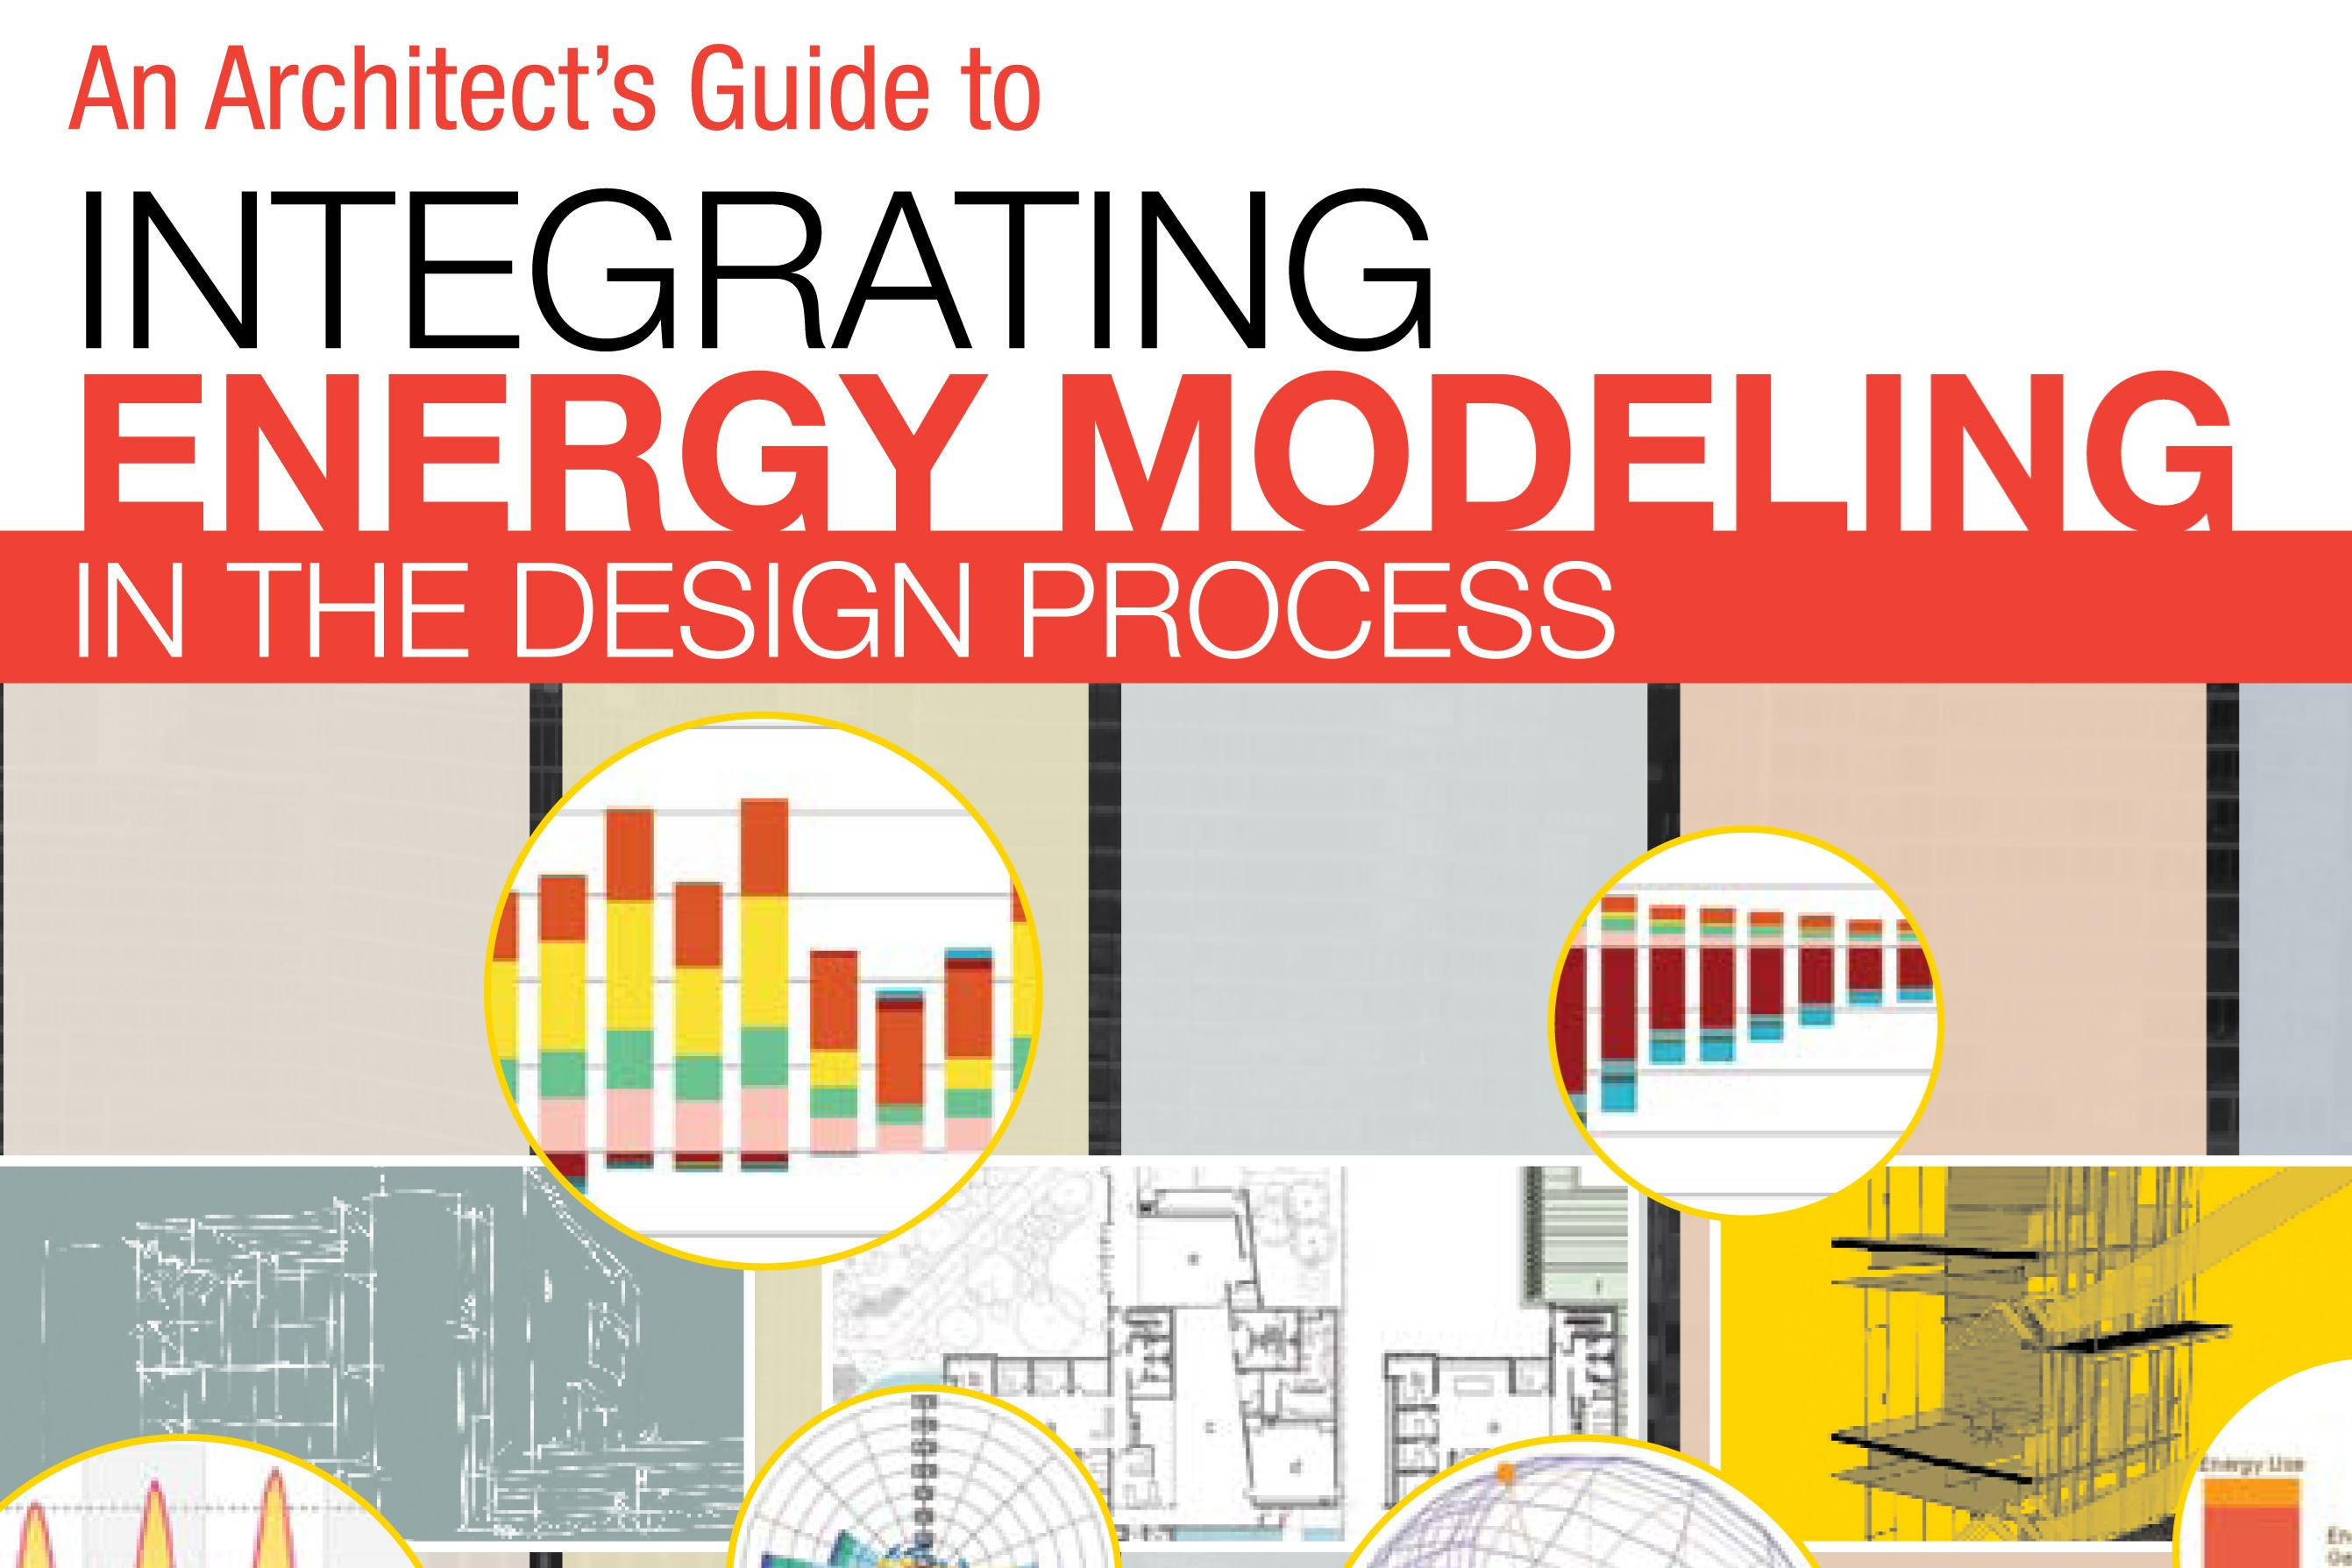 AIA Releases Energy Modeling Guide for Architects | Architect Magazine |  Building Performance, Energy Efficiency, BIM, Jim Hanford, Sean Quinn